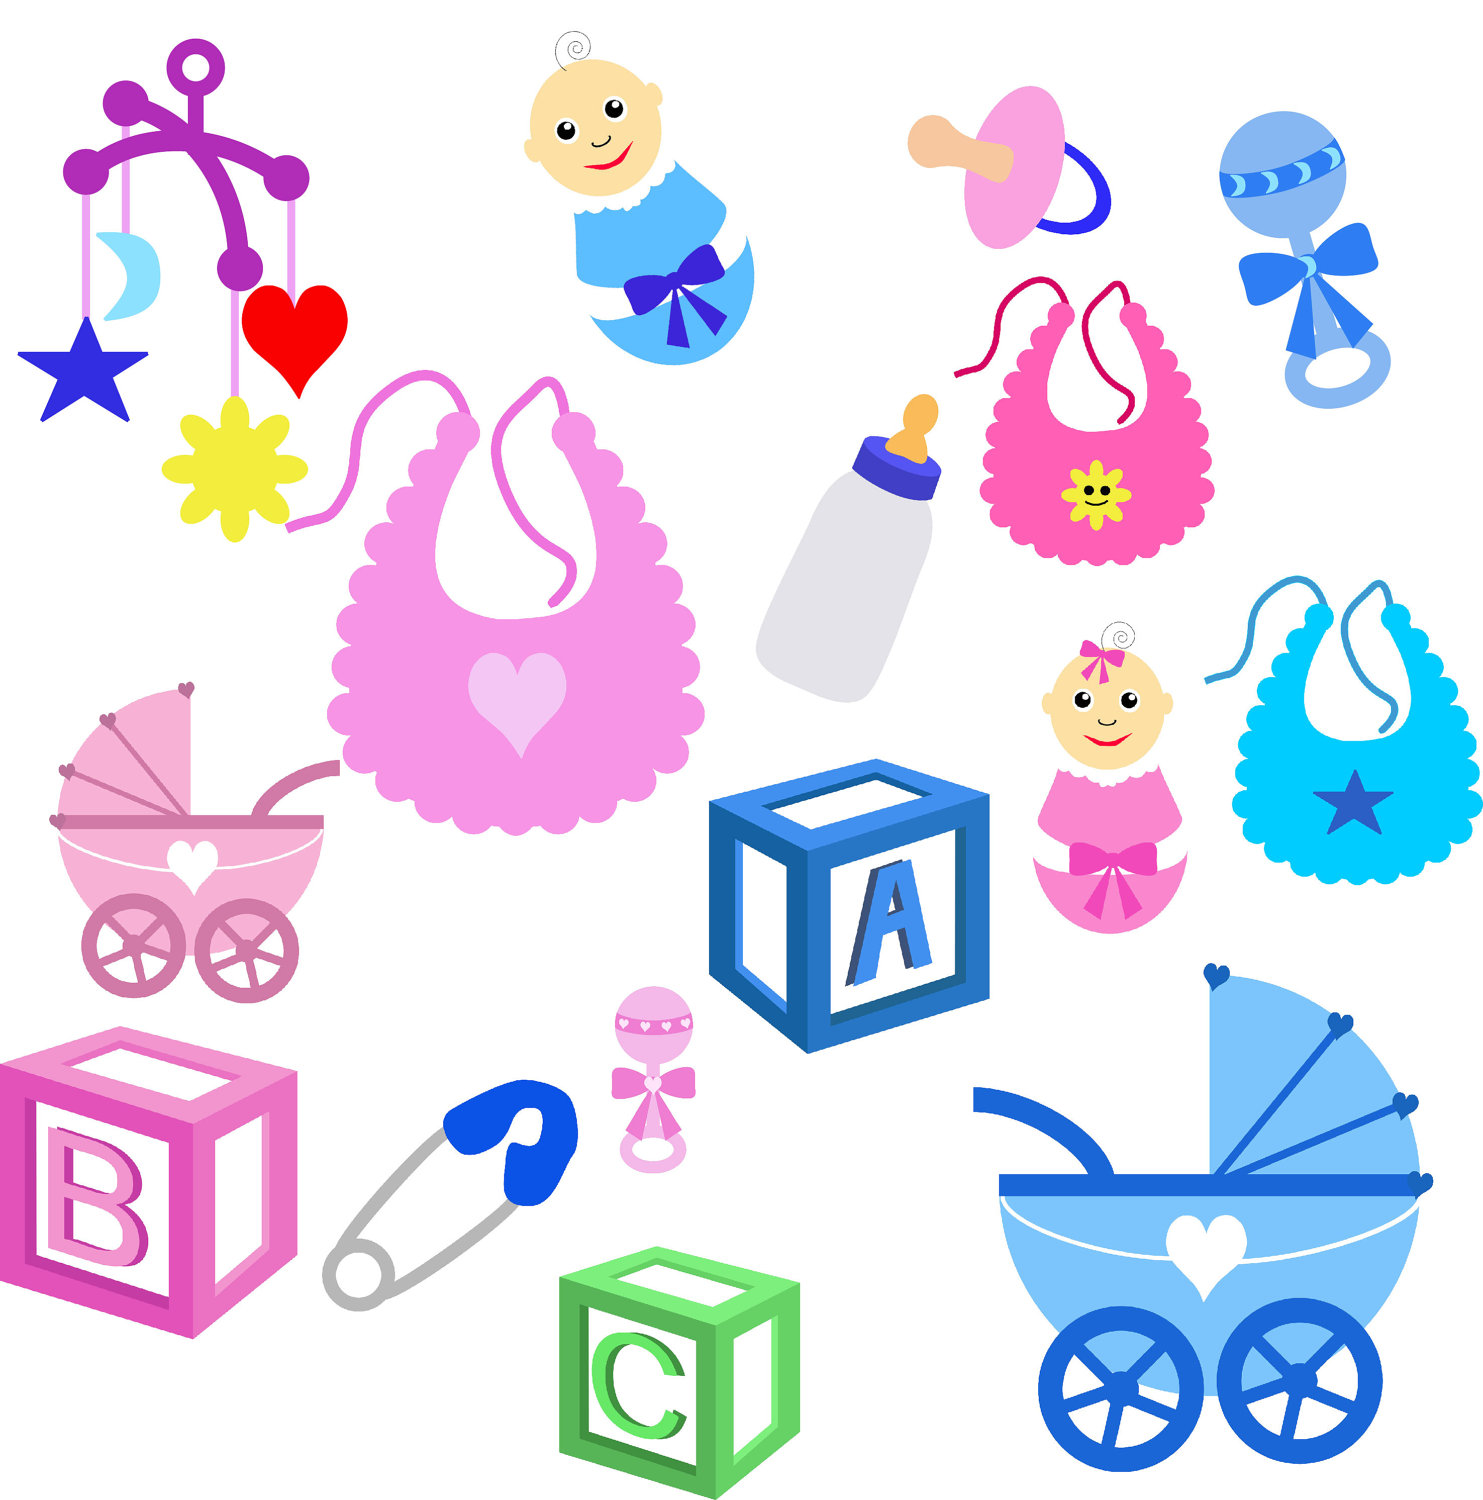 Baby girl supplies clipart black and white stock Baby Stuff Clipart & Baby Stuff Clip Art Images - ClipartALL.com black and white stock